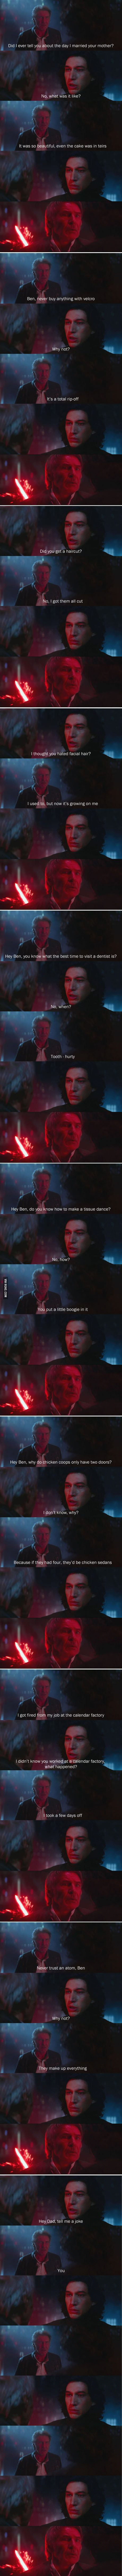 this is funny yet every time he stuck the lightsaber through Han I cried